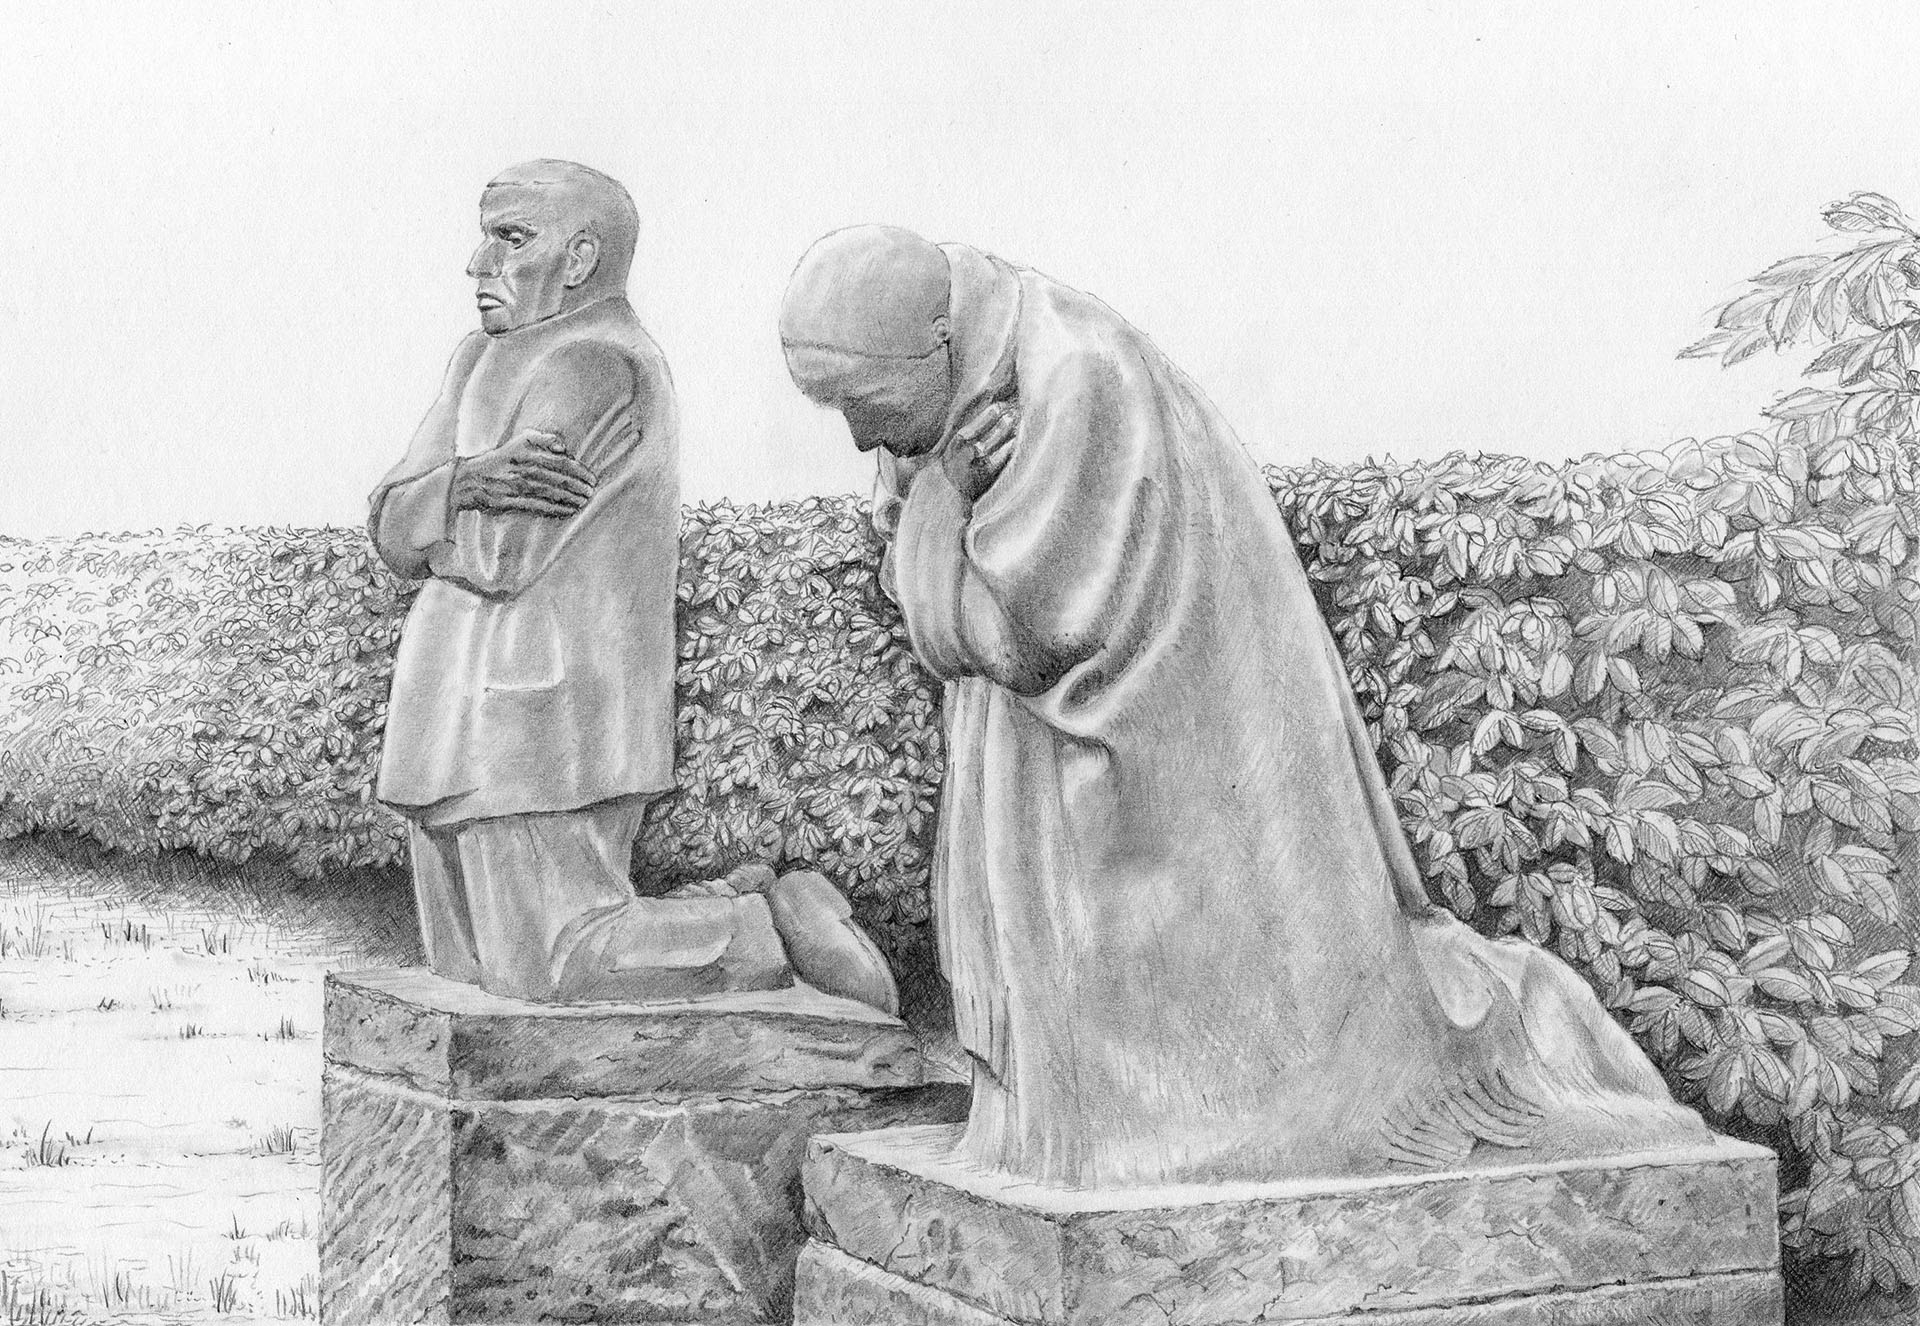 The 'Grieving Parents' by Käthe Kollwitz, at Vladslo German Cemetery near Diksmuide, Belgium. The sculpture is the artist's memorial to her son Peter, who was killed near Langemark in 1914